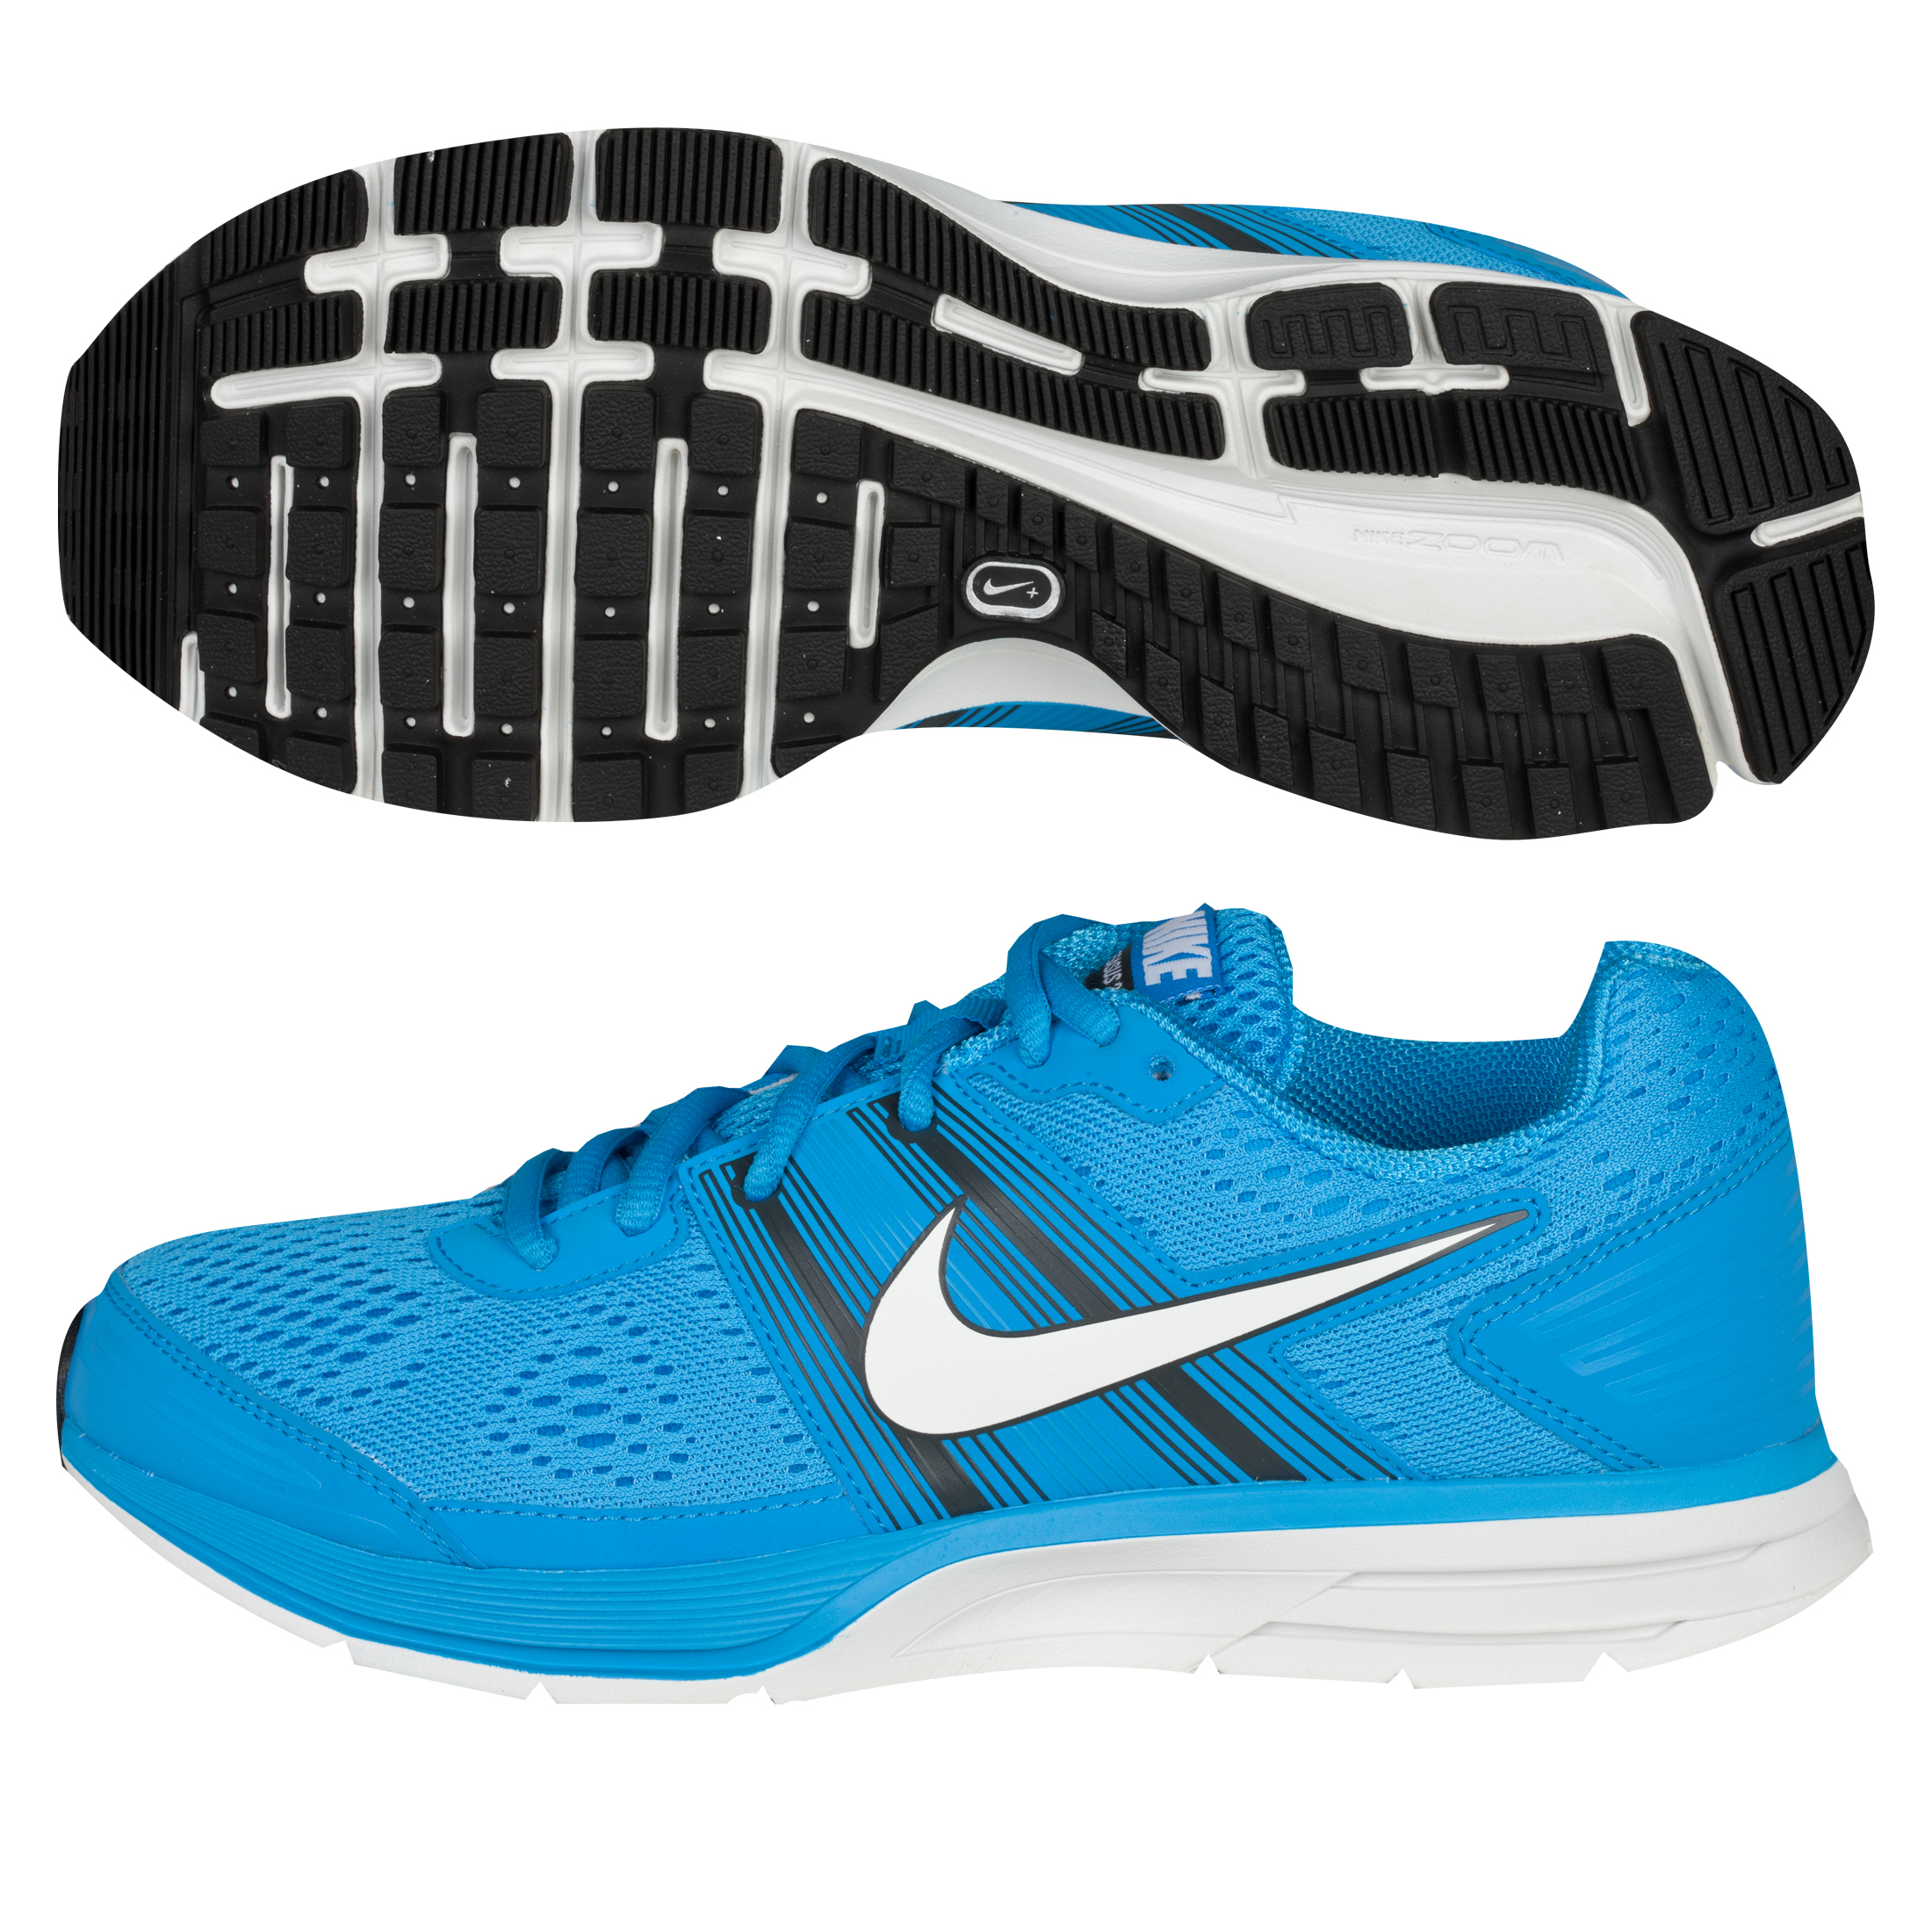 Nike Air Pegasus(+) 29 Trainers - Blue Glow/White/Anthracite - Womens